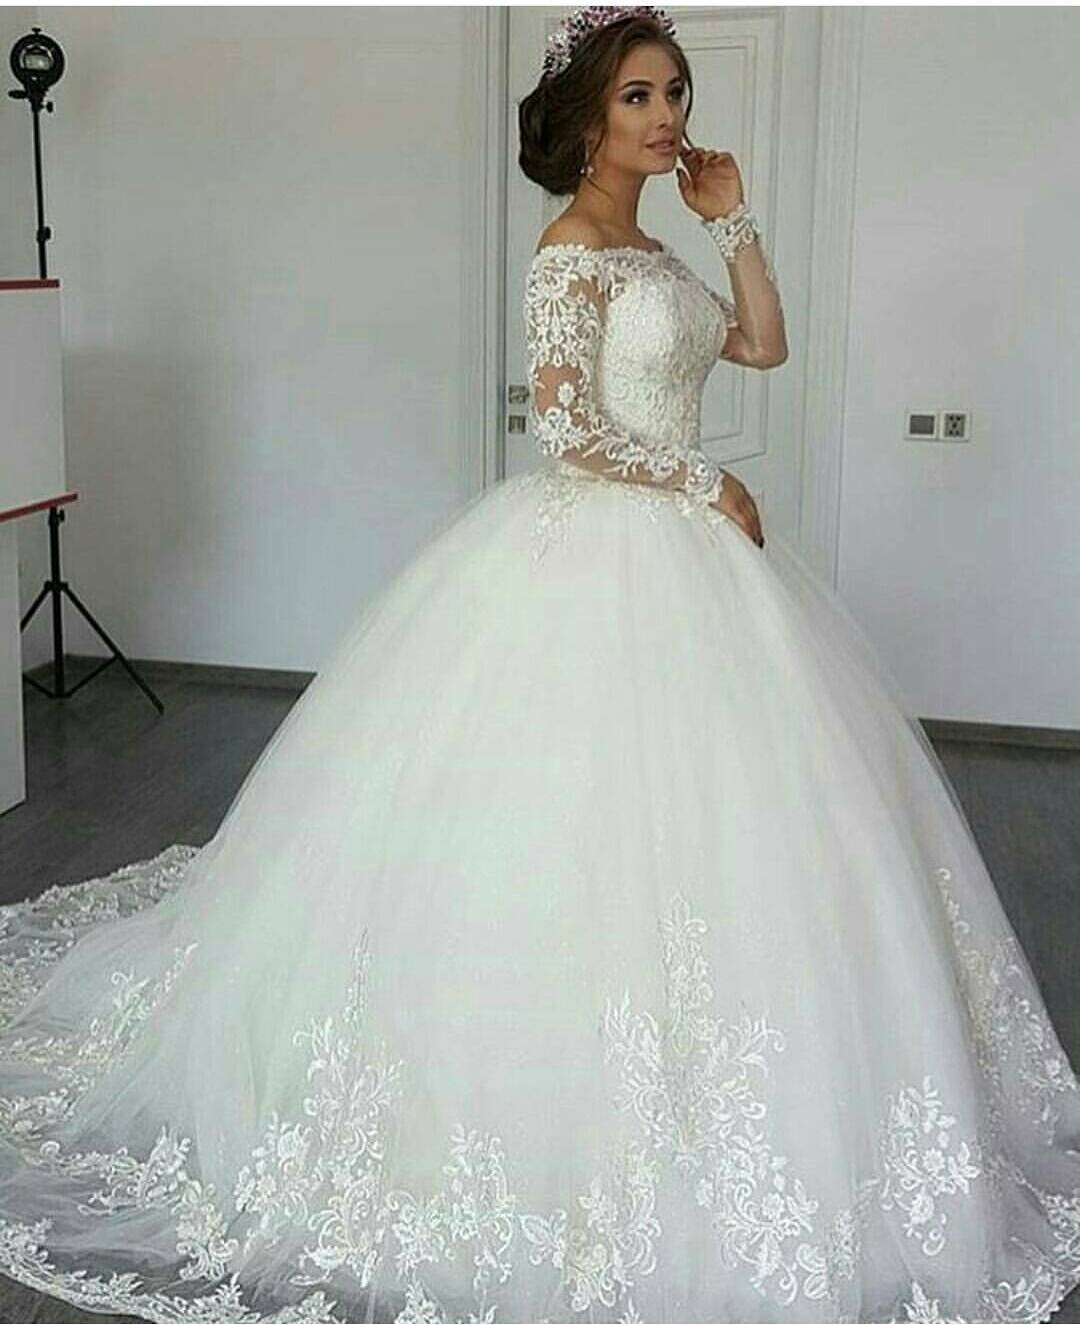 Wedding Dresess: Long Sleeve Wedding Dress, Ivory Wedding Dress, Wedding